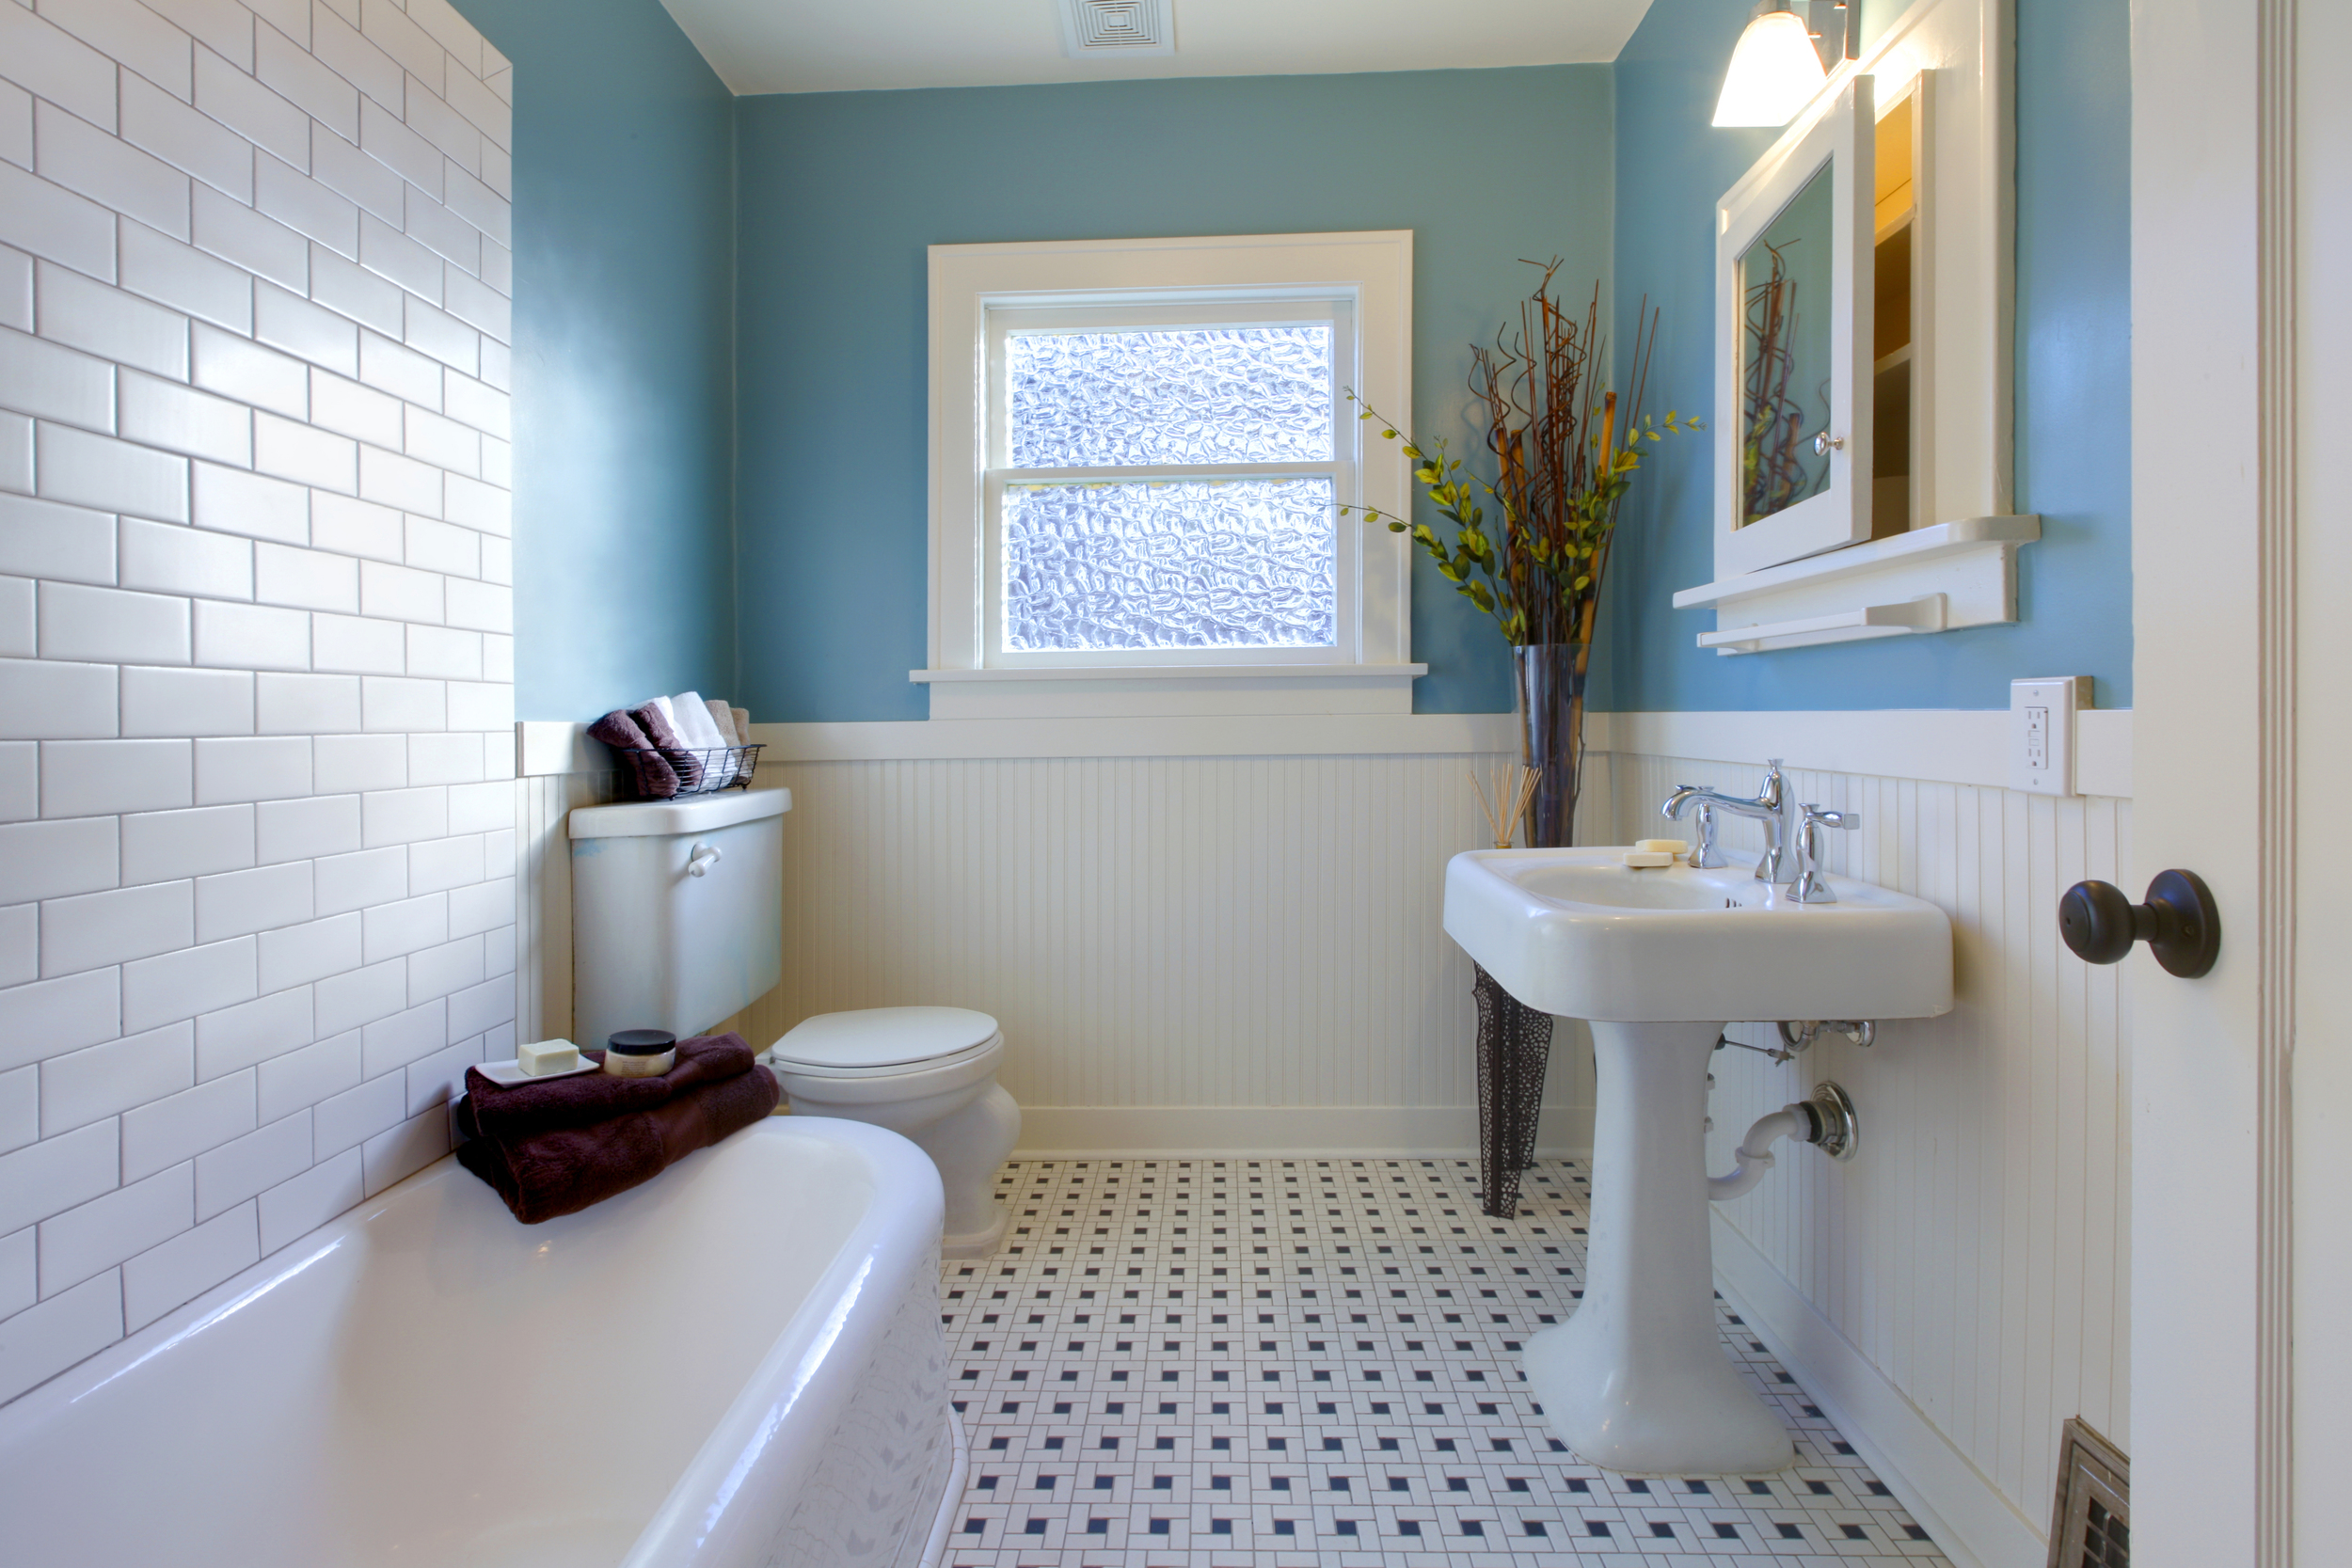 Small retro bathroom with black and white tile, teal paint, bath, and pedistol sink